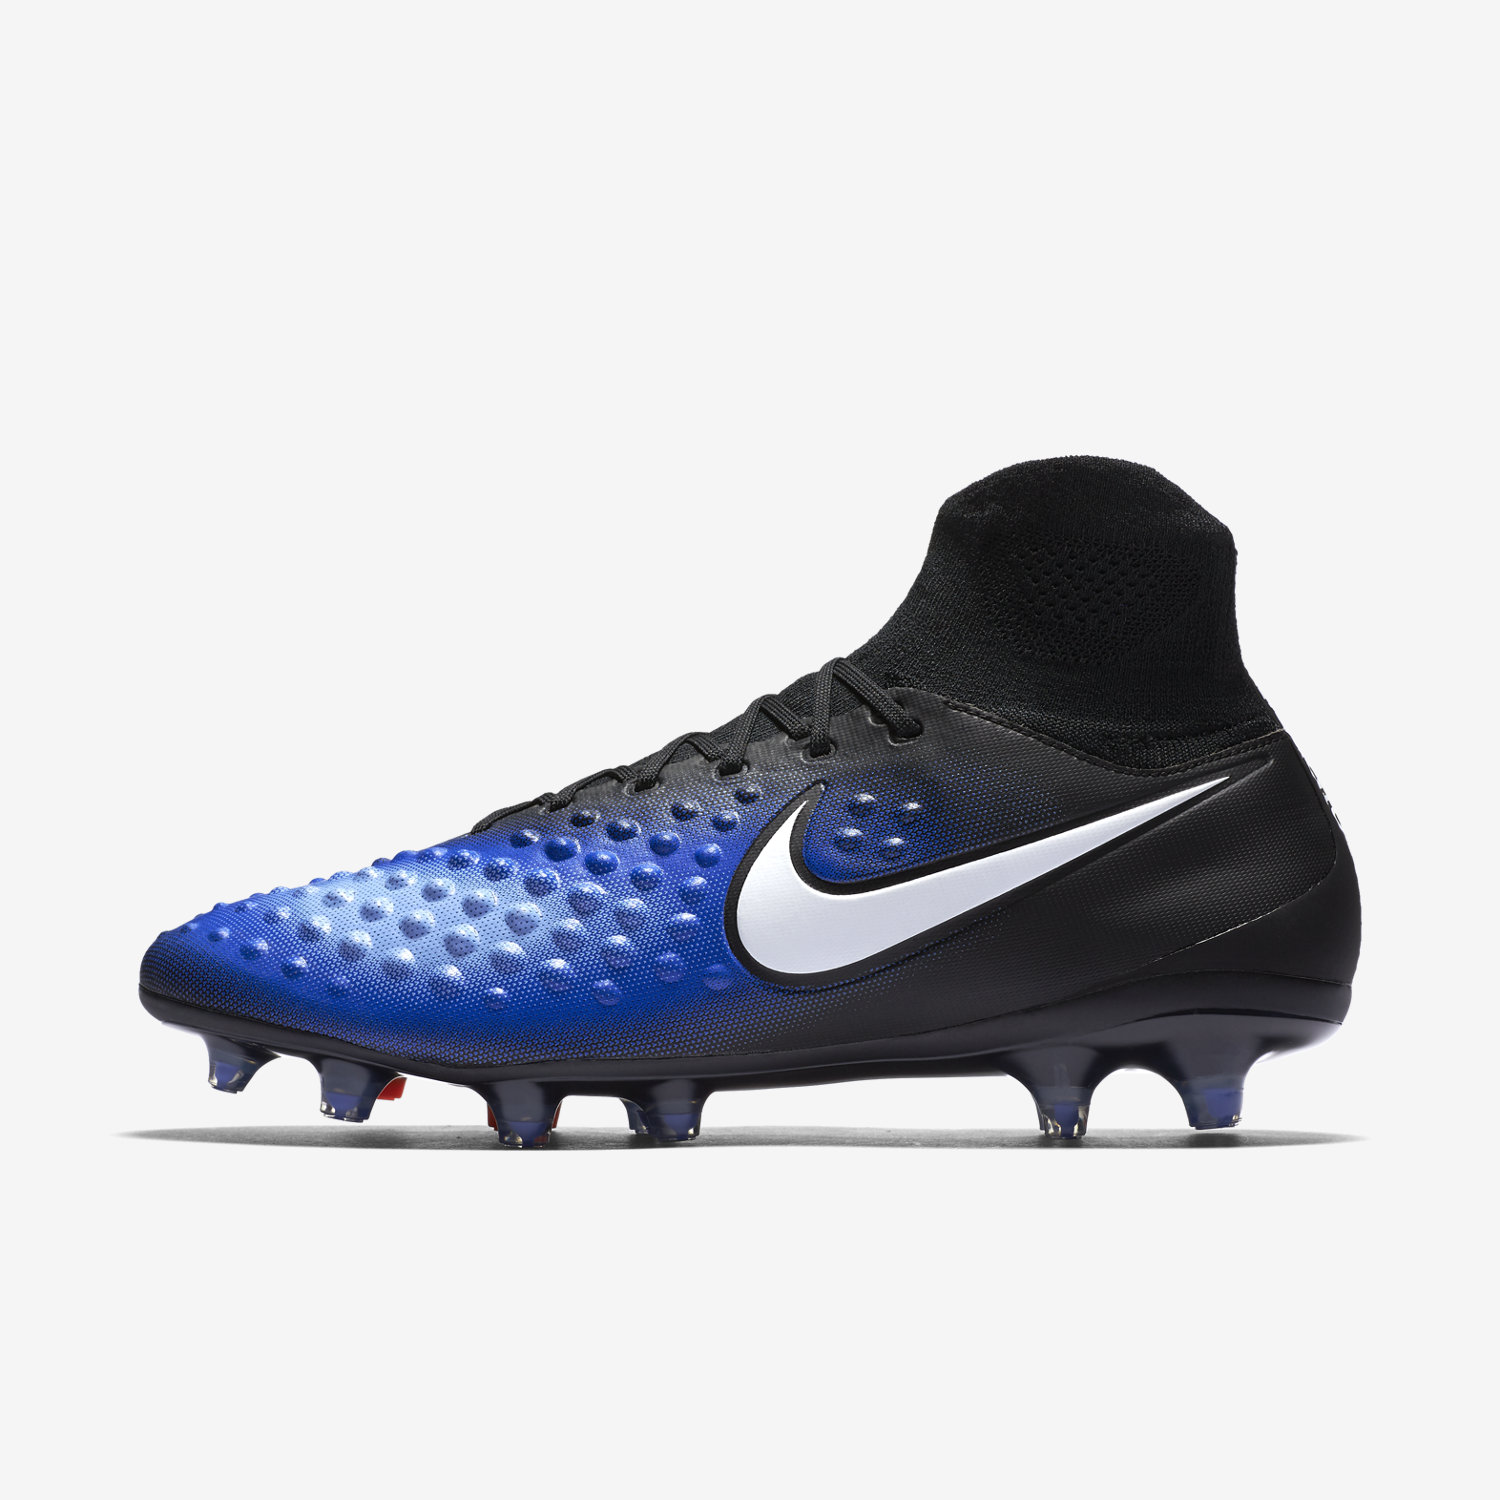 Exceptionnel Nike Magista Orden II FG - Black/Blue VS71